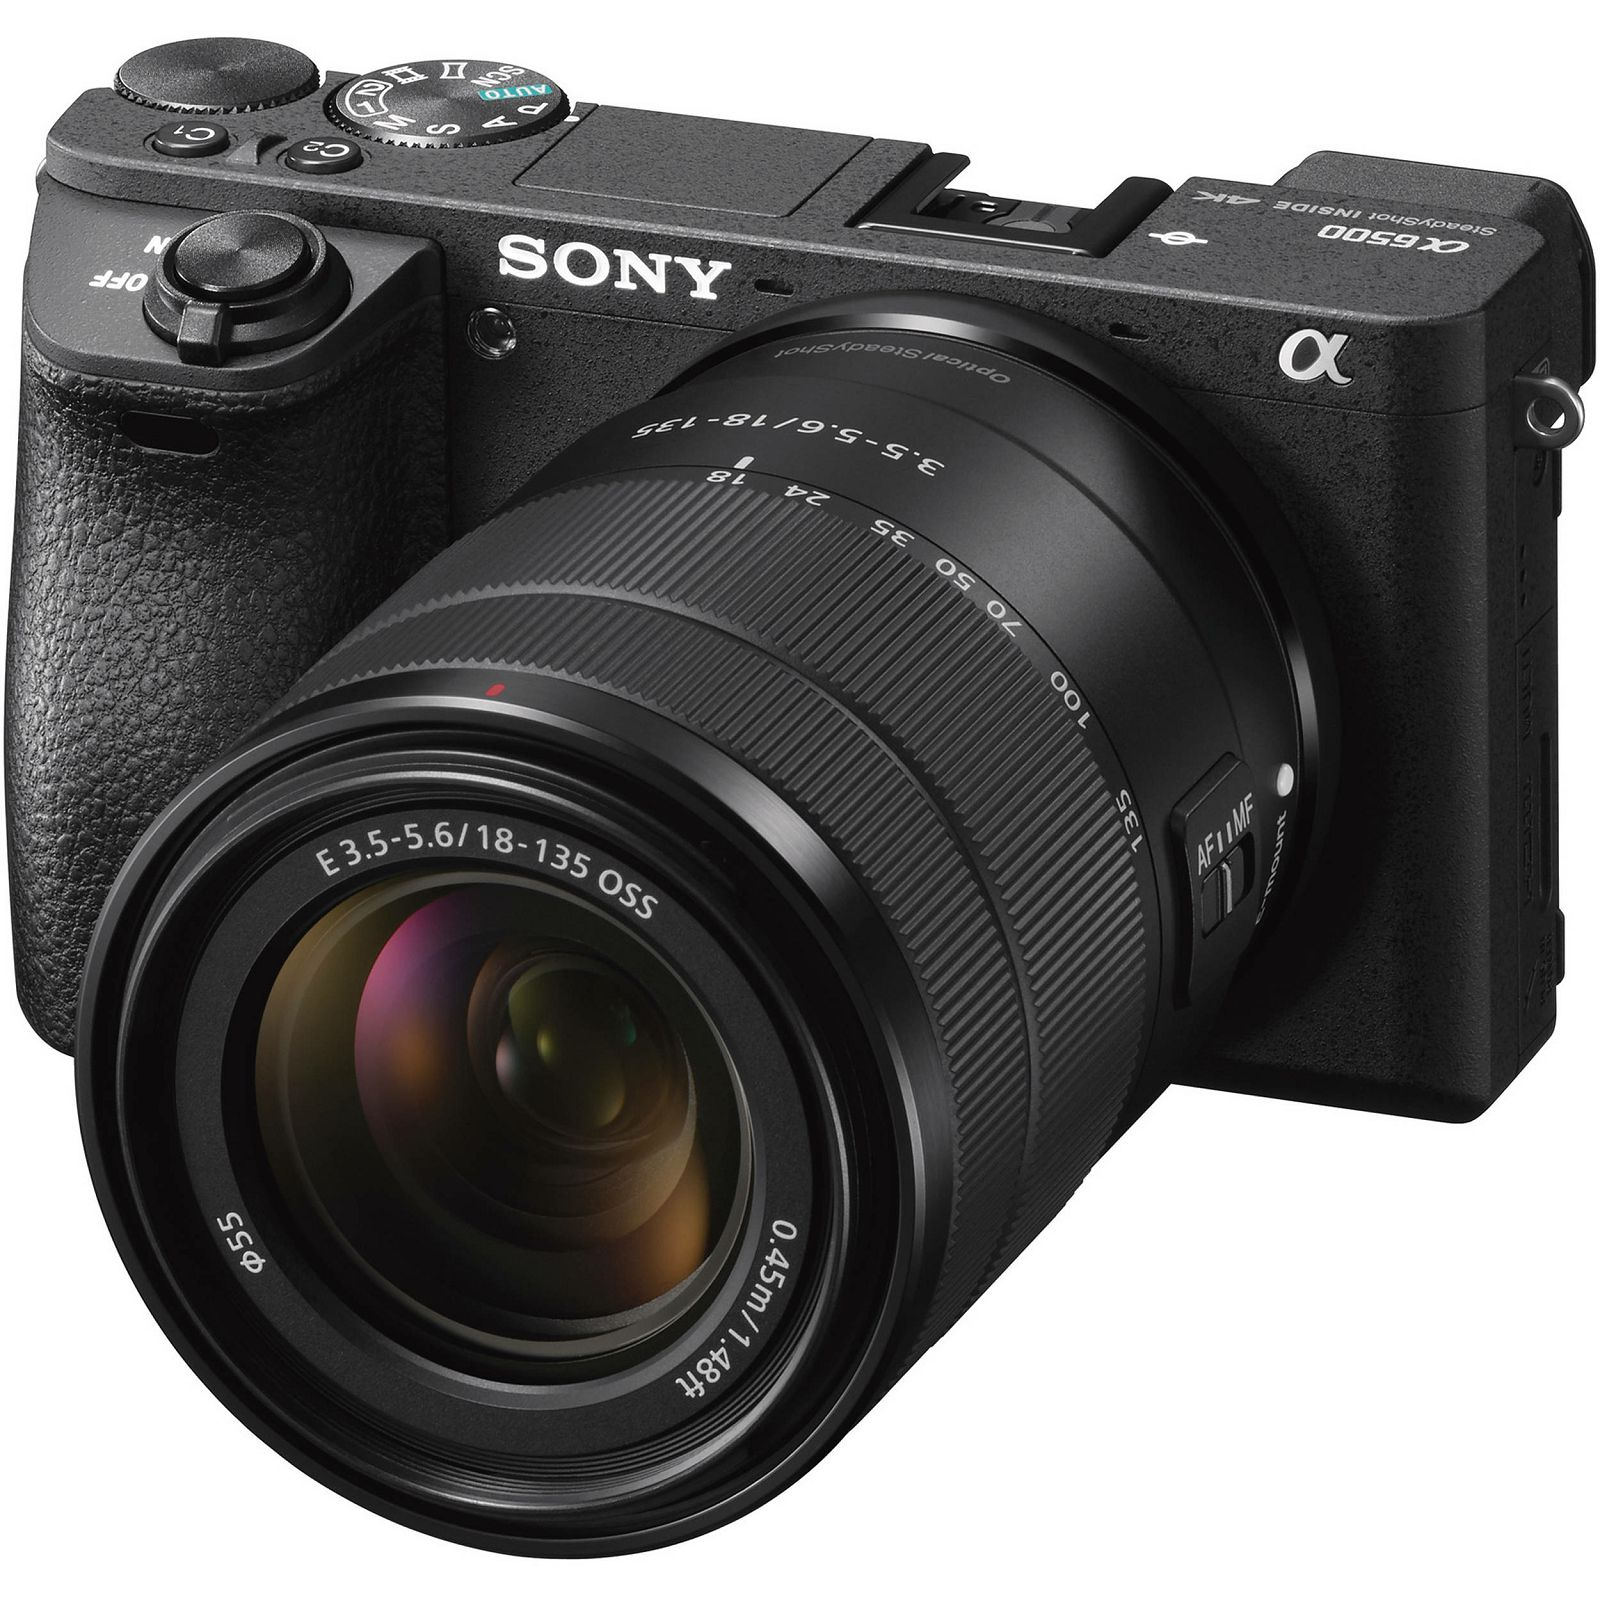 Sony Alpha a6500 + 18-135 f/3.5-5.6 OSS KIT Black Mirrorless Digital Camera crni bezrcalni digitalni fotoaparat i allround objektiv SEL18135 18-135mm F3.5-5.6 ILCE-6500MB ILCE6500MB ILCE6500MB.CEC